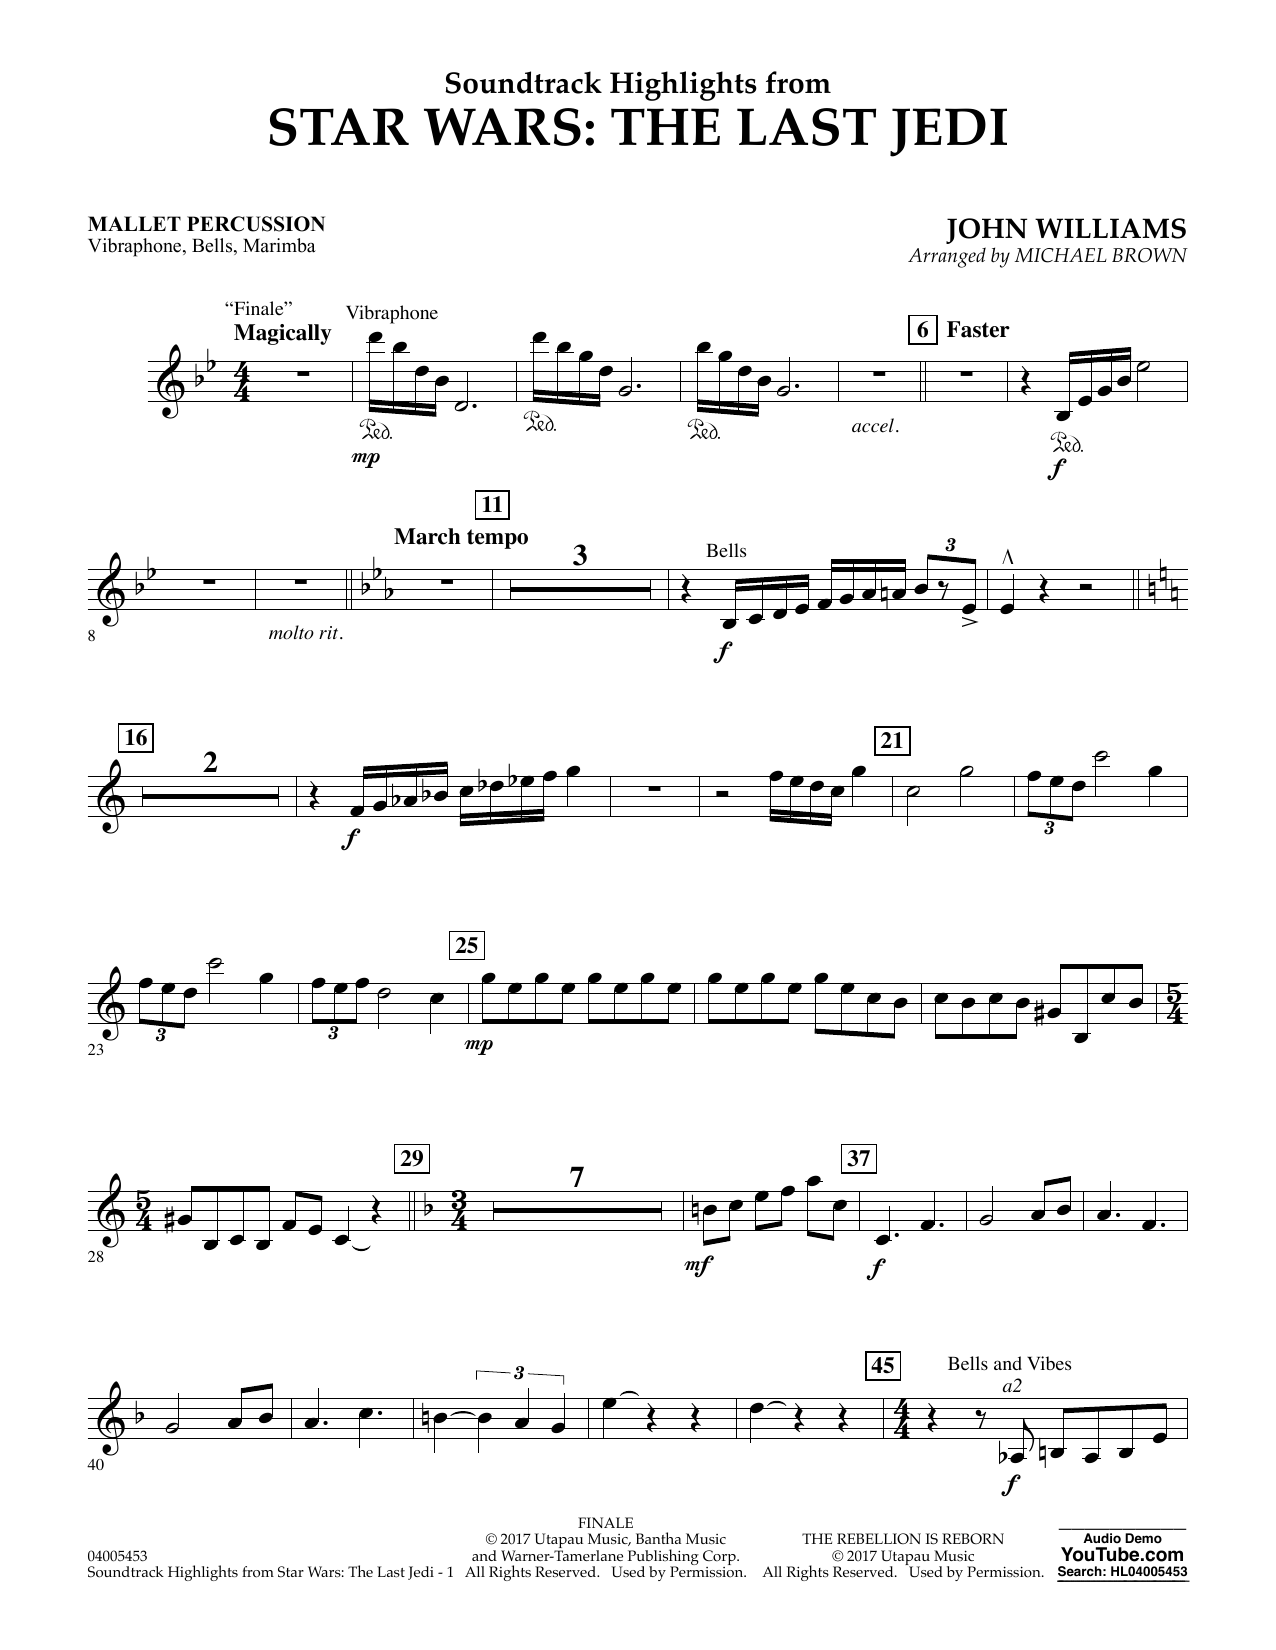 Michael Brown Soundtrack Highlights from Star Wars: The Last Jedi - Mallet Percussion sheet music notes and chords. Download Printable PDF.